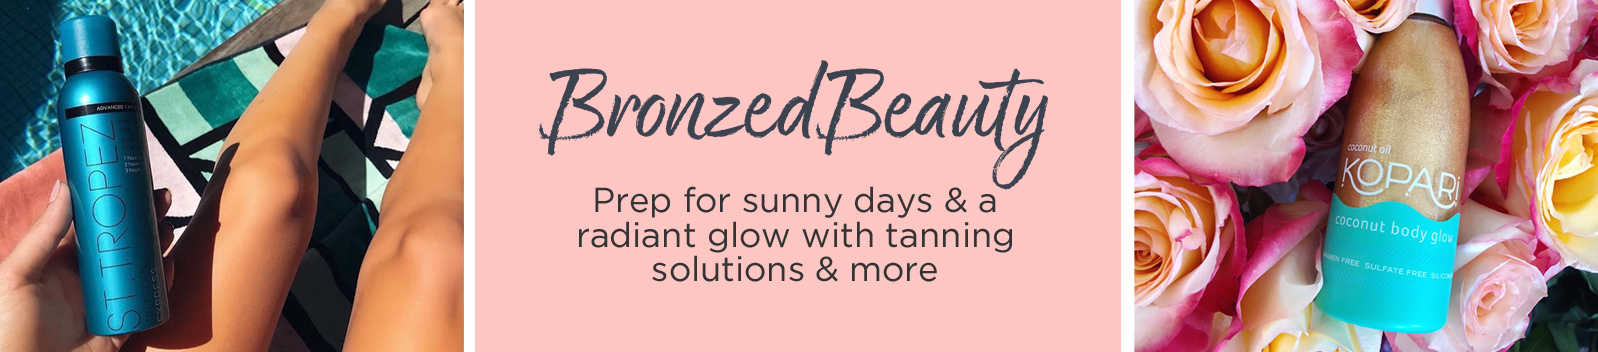 #BronzedBeauty  Prep for sunny days & a radiant glow with tanning solutions & more